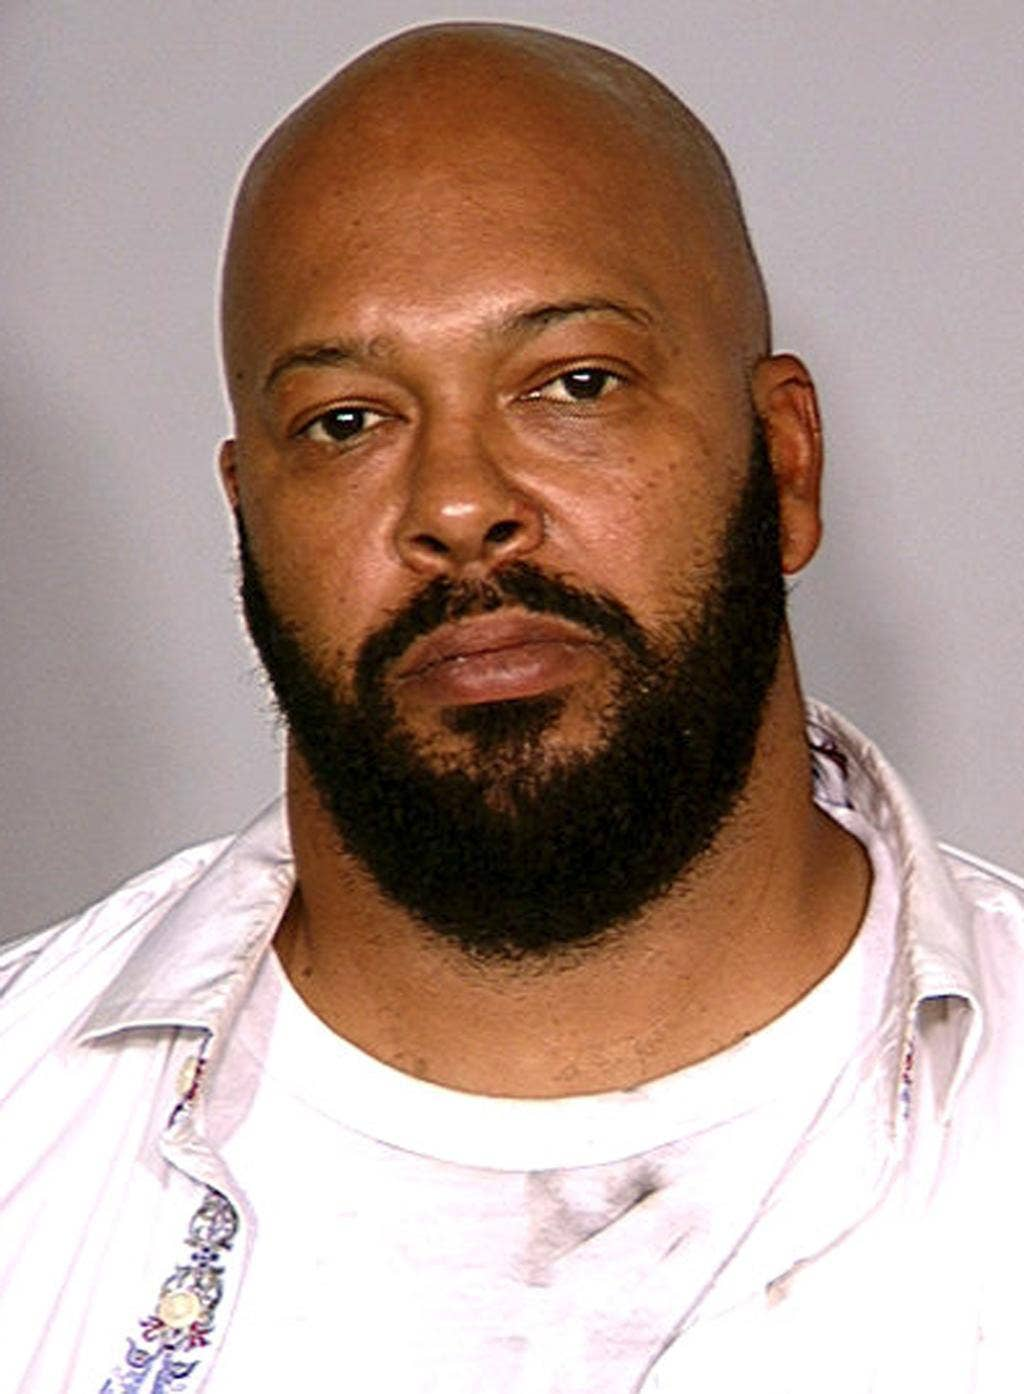 Suge Knight earned a  million dollar salary - leaving the net worth at 200 million in 2017